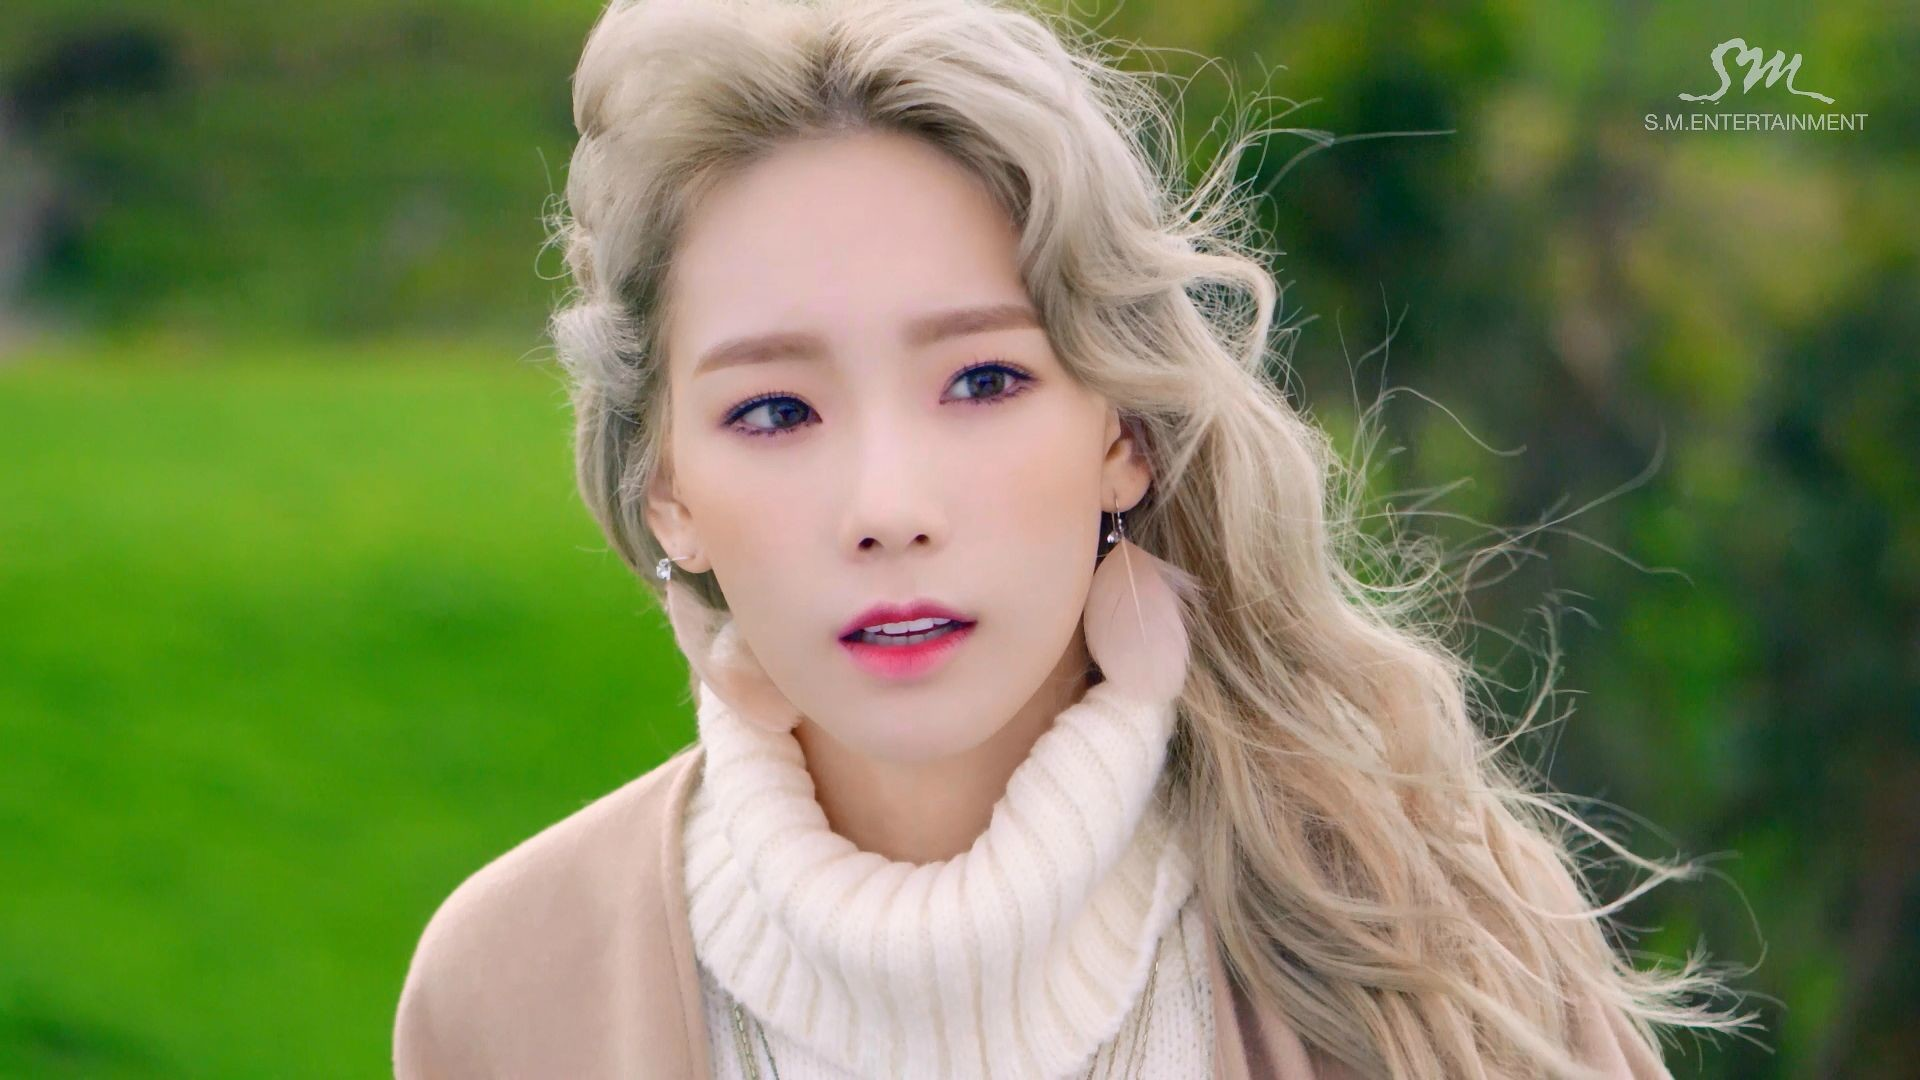 1920x1080 Taeyeon ashy blonde | Asian Shades of Blonde | Pinterest | SNSD and Girls  generation